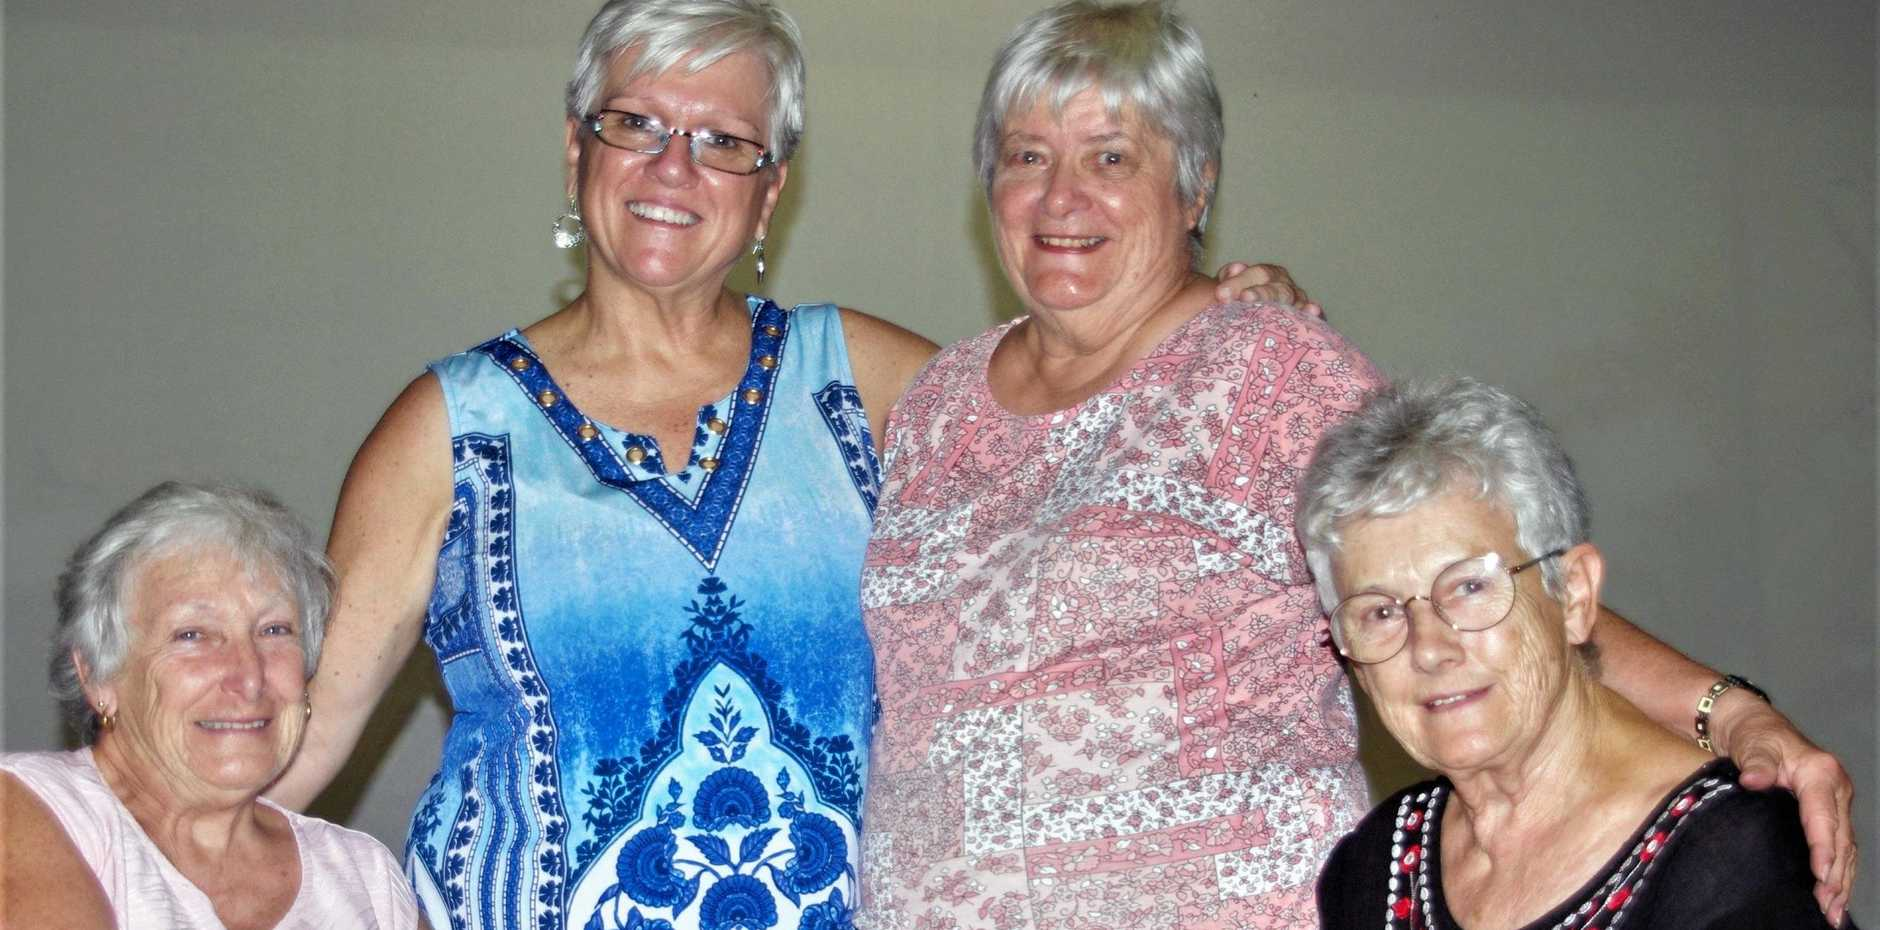 GRANNIES WITH GRUNT: Founding members of the GOP (Grannies Only Party) - Di Meyers, Debra Pitura, Gwen Griffin and Carol Burls.